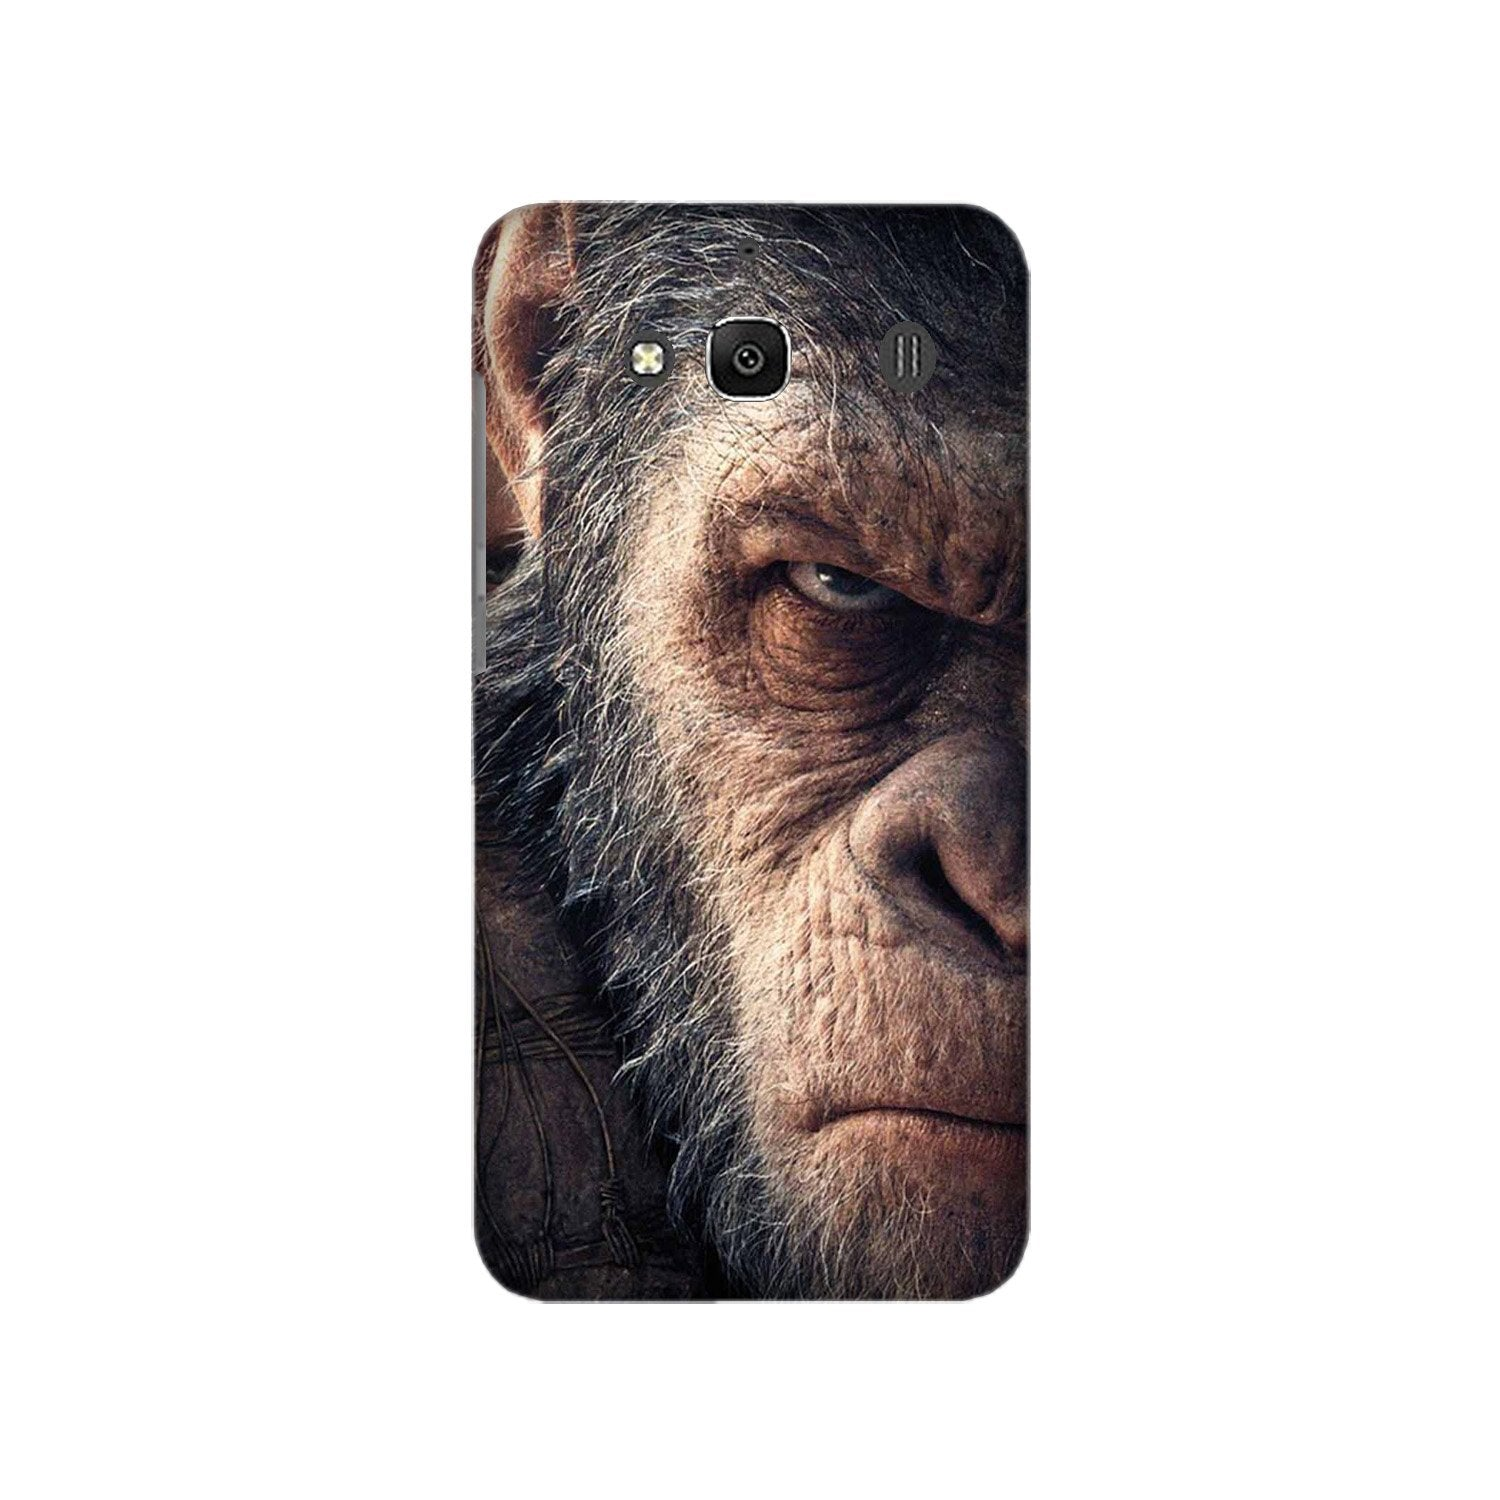 Angry Ape Mobile Back Case for Redmi 2 Prime  (Design - 316)